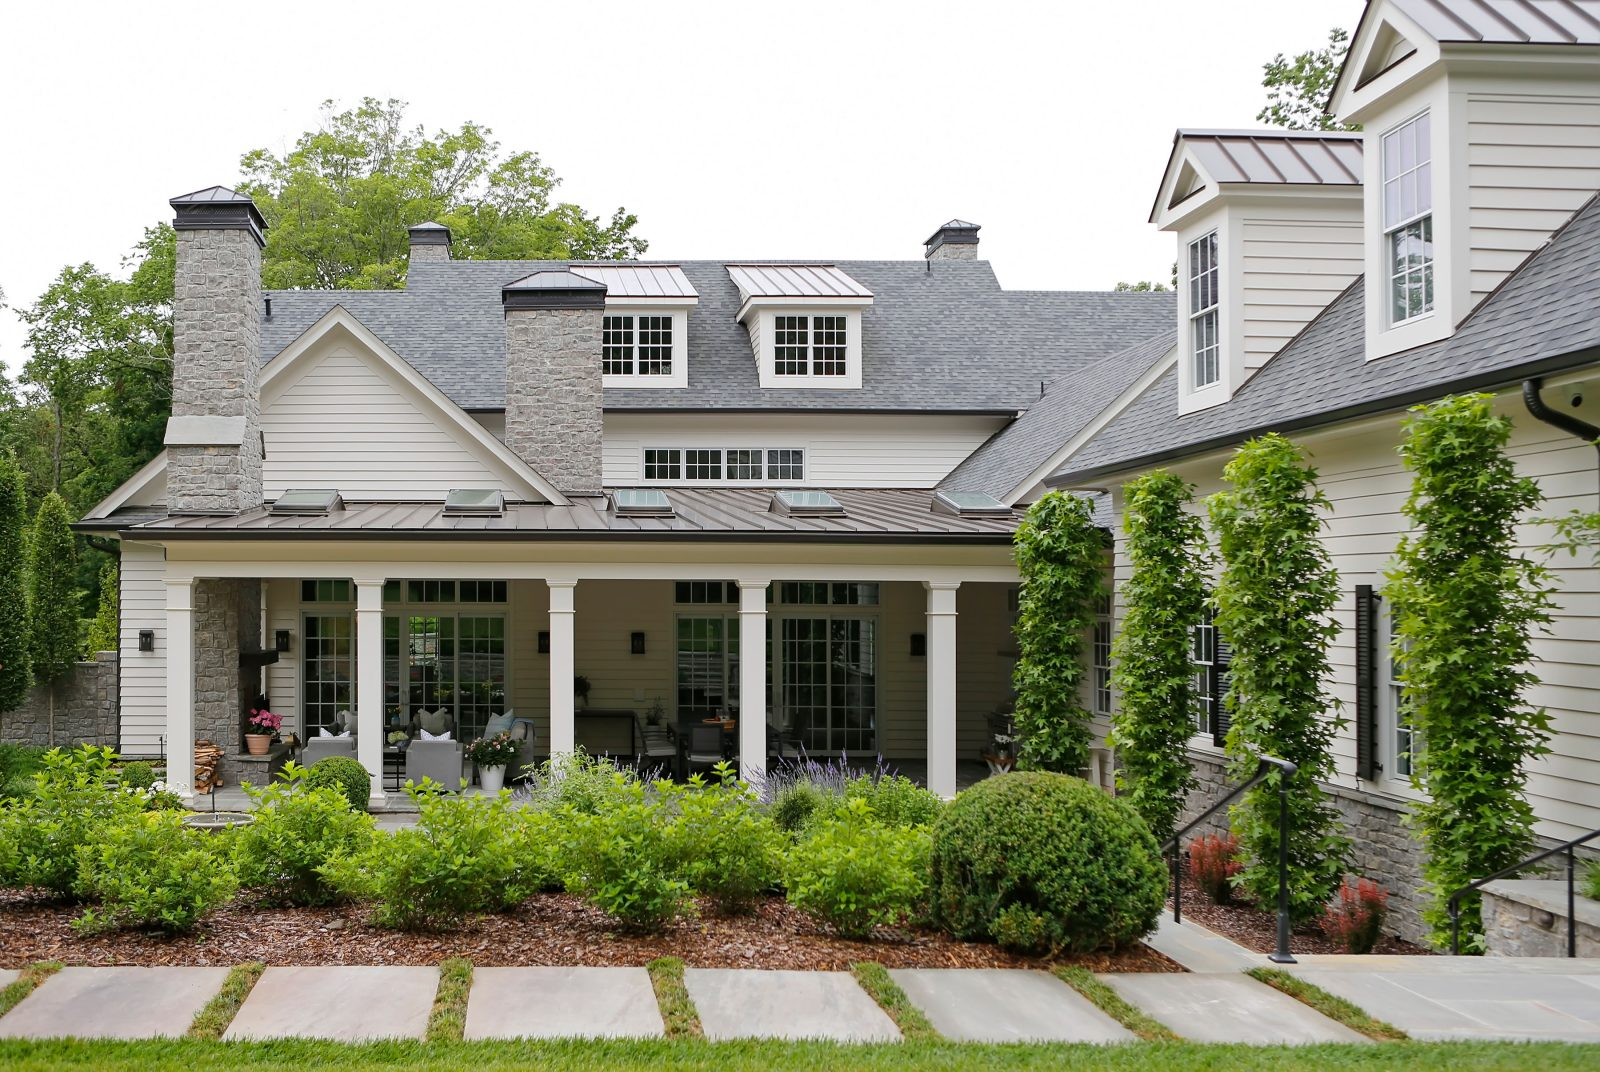 Backyard garden with covered porch with dinning and lounging space